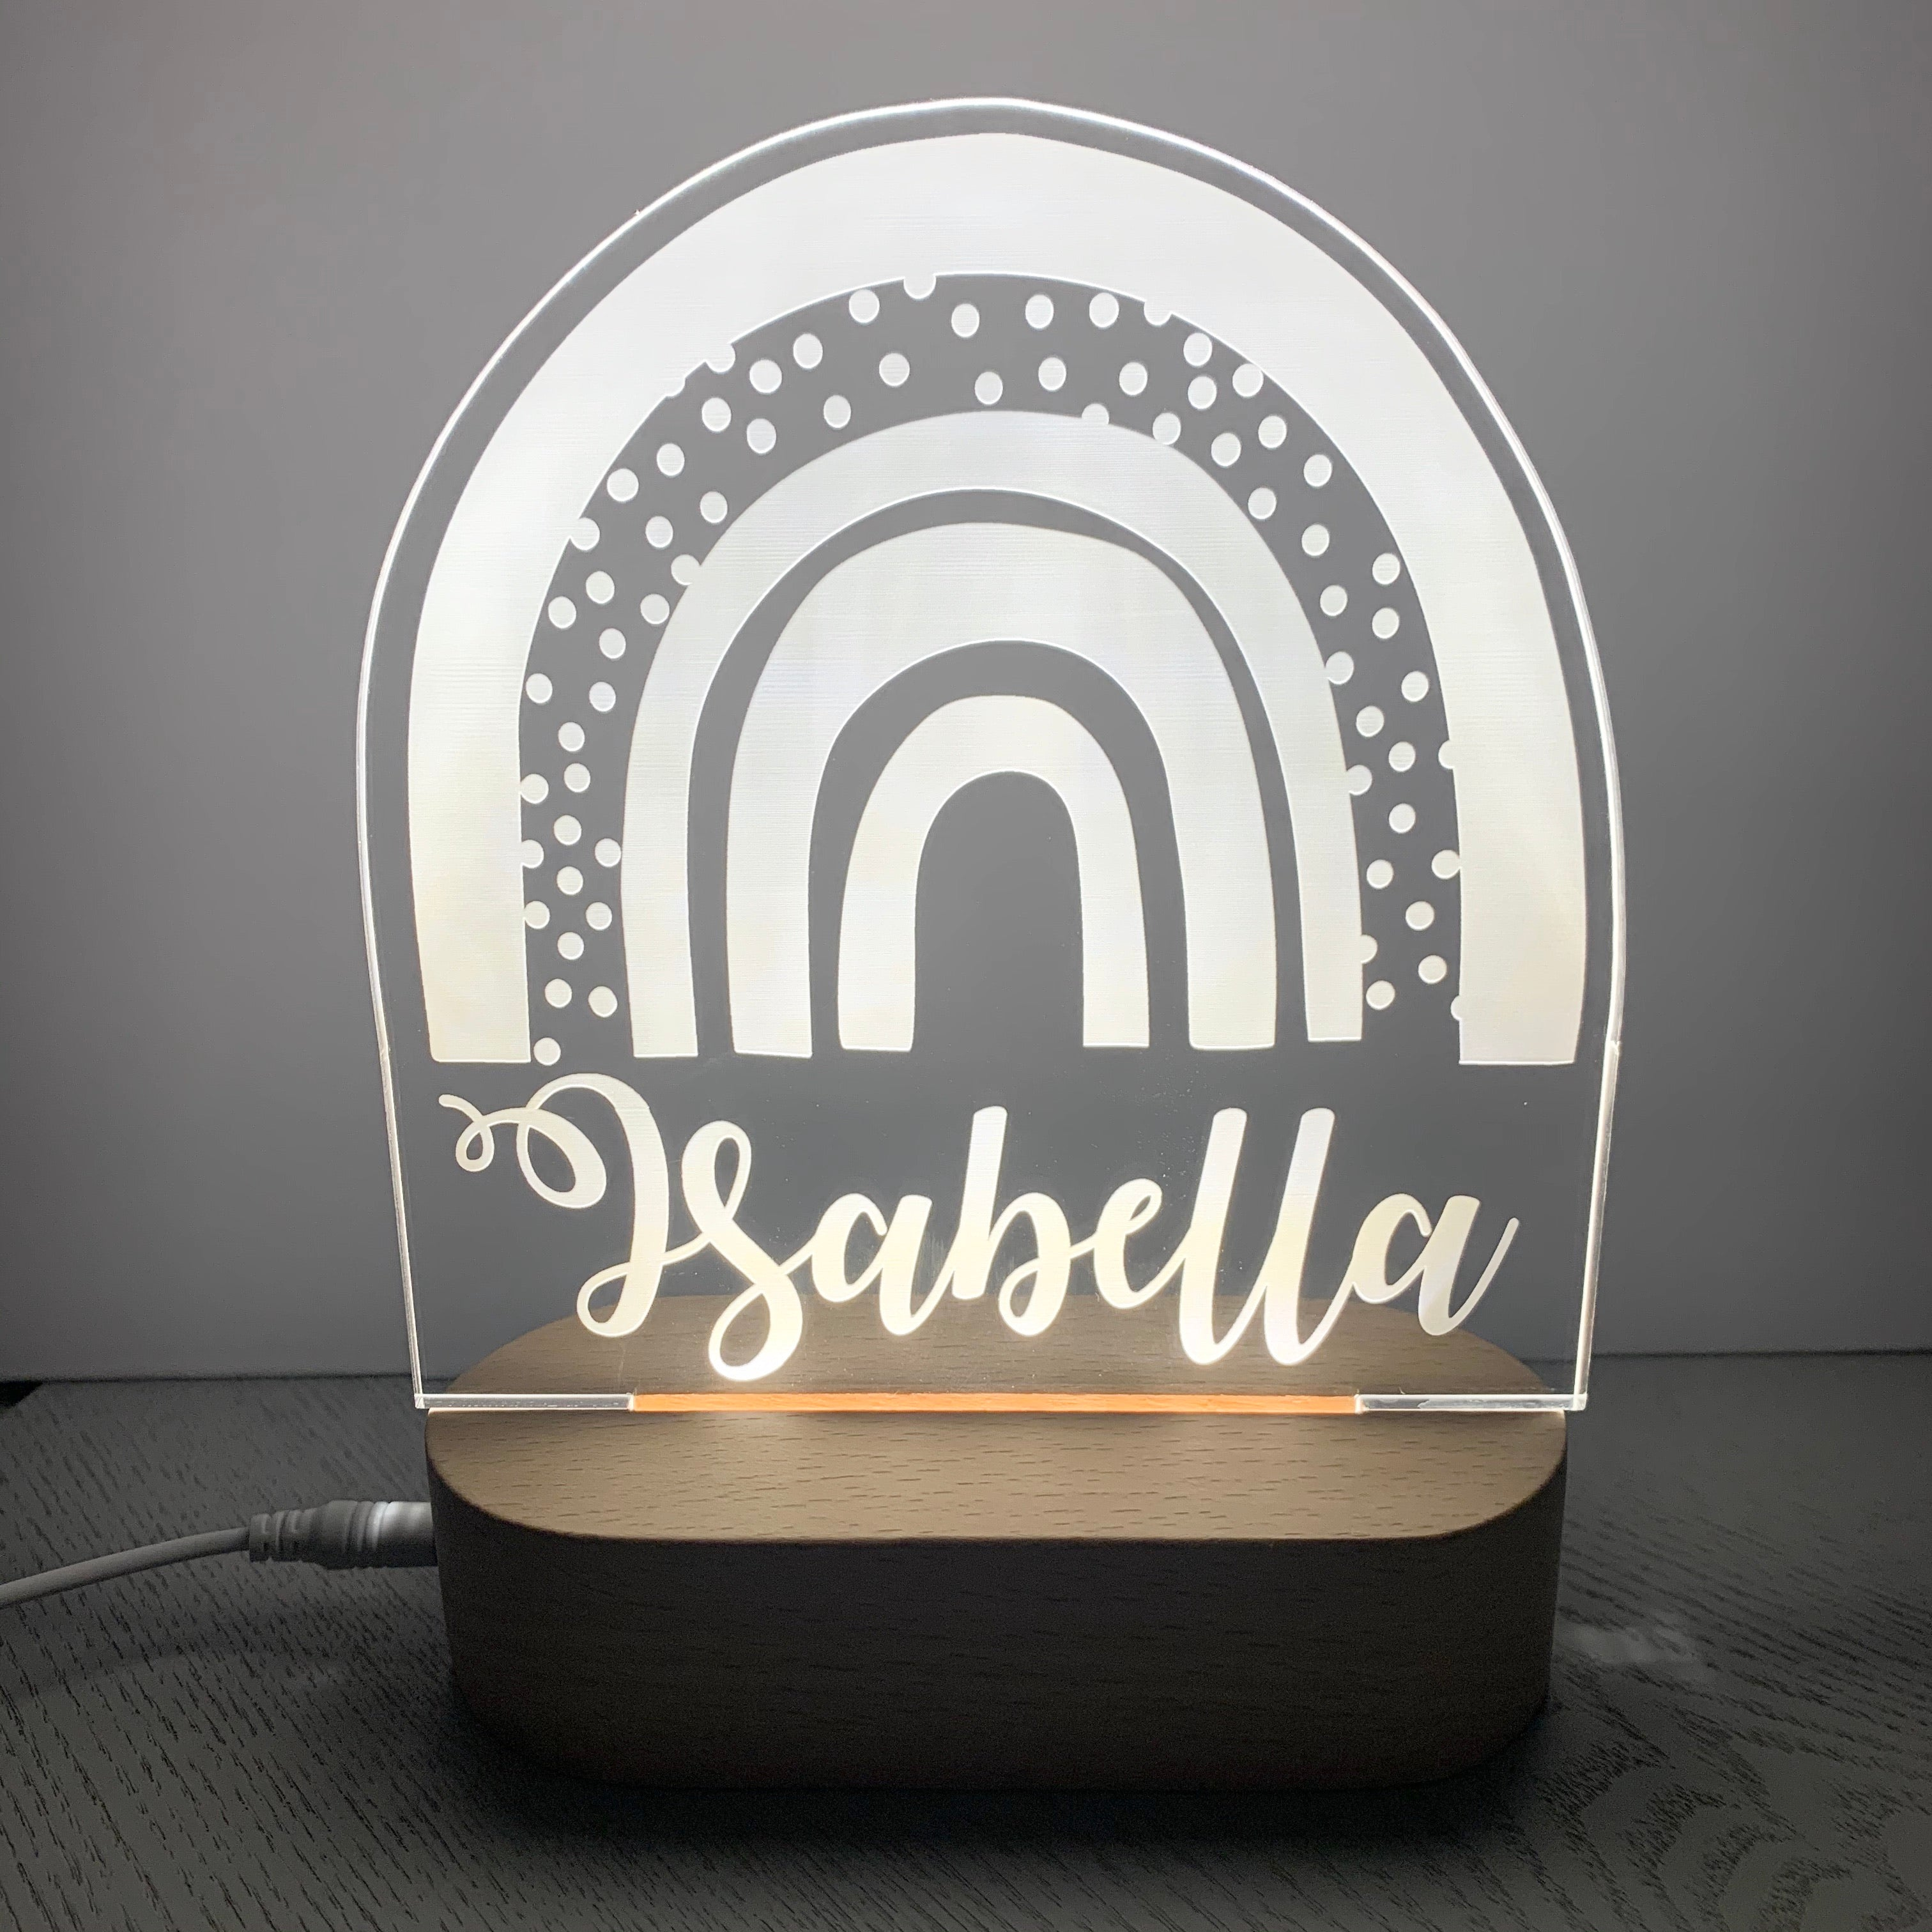 Rainbow Personalised Night Light